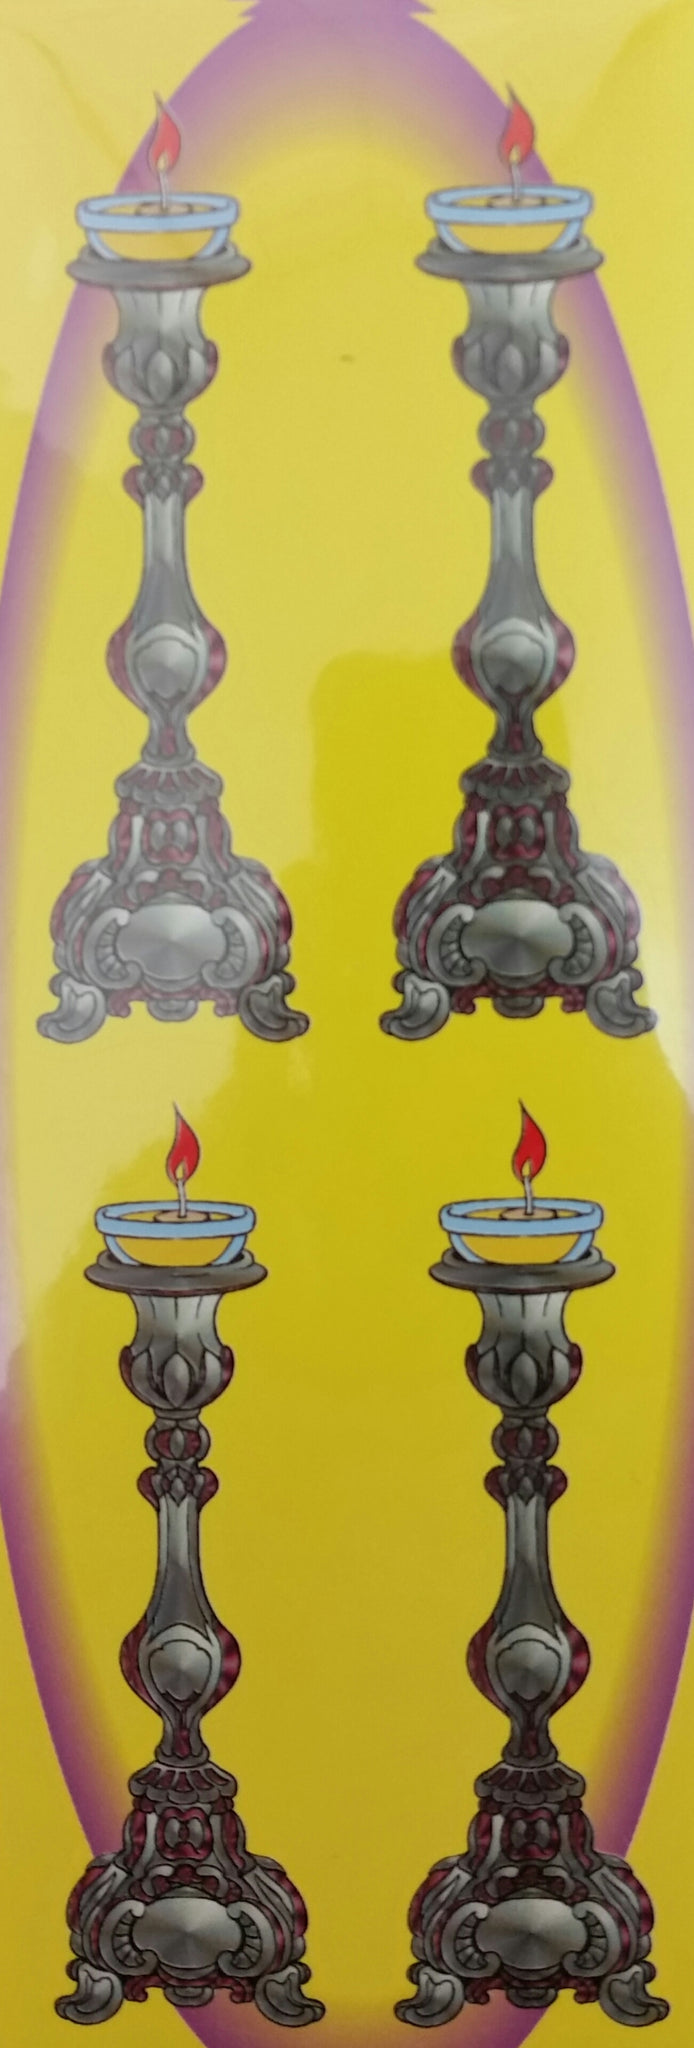 18-27 Shabbos candle sticks